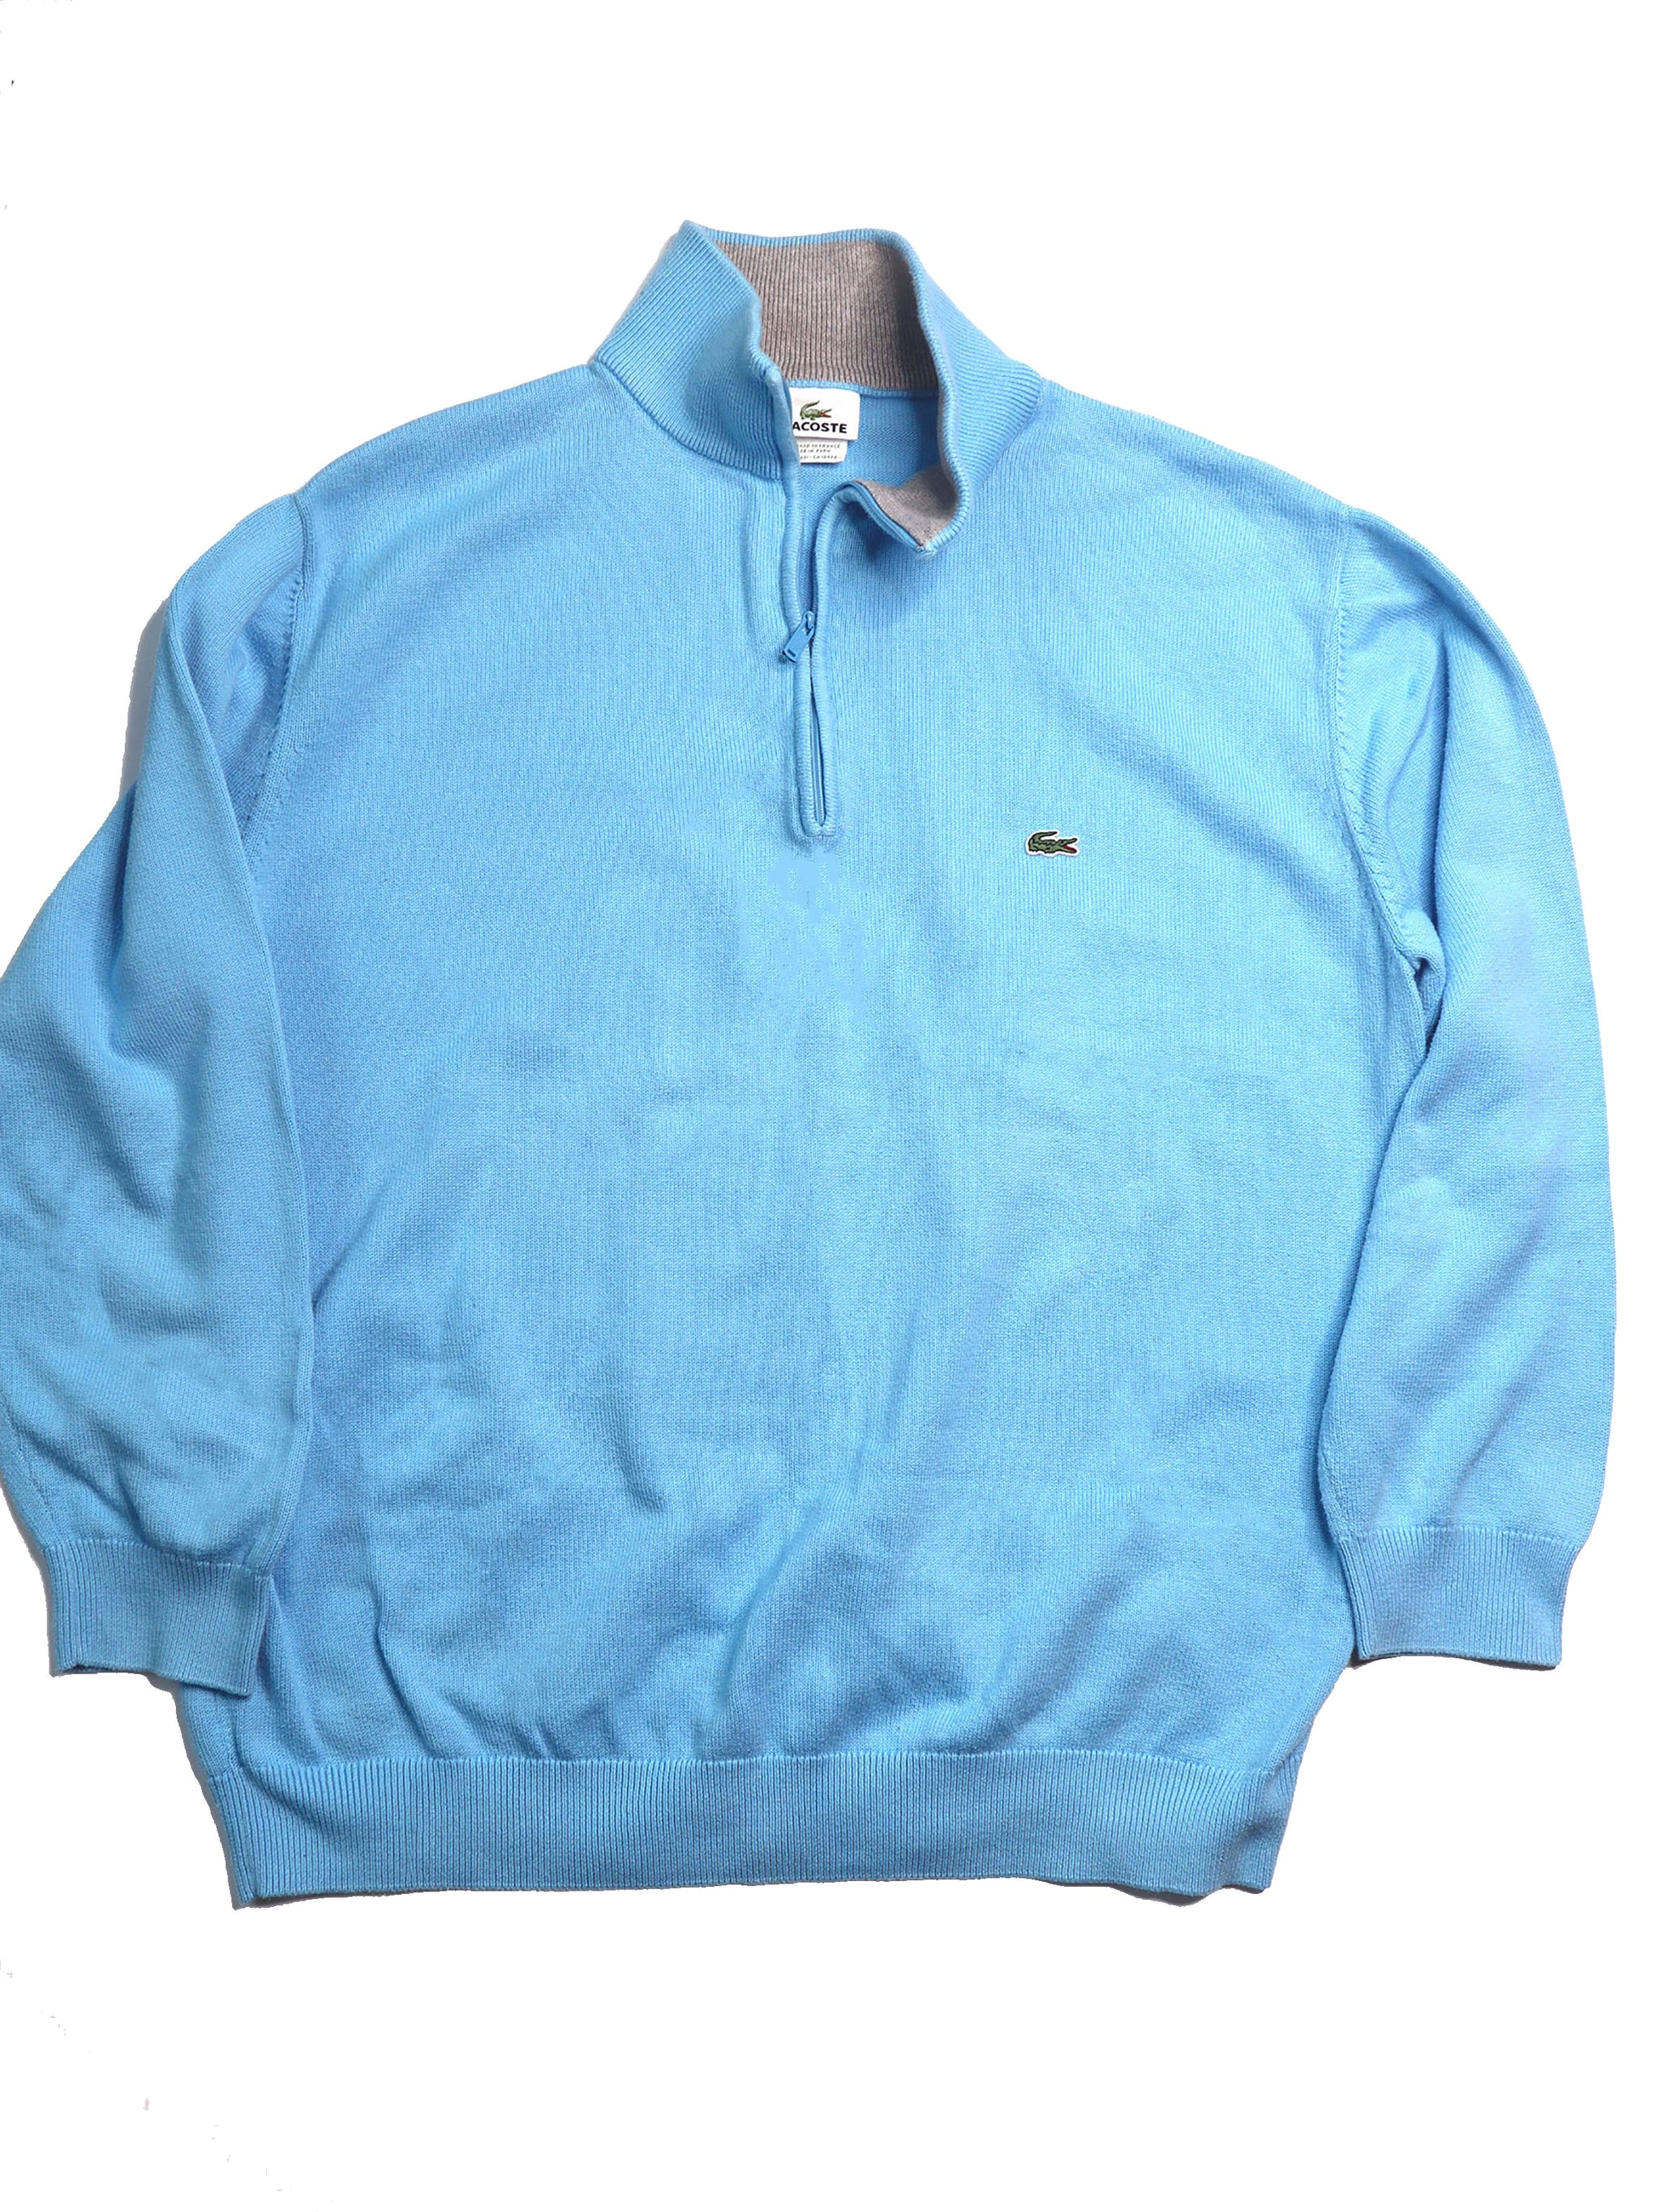 Men's Lacoste 1/4 Zip Sweater